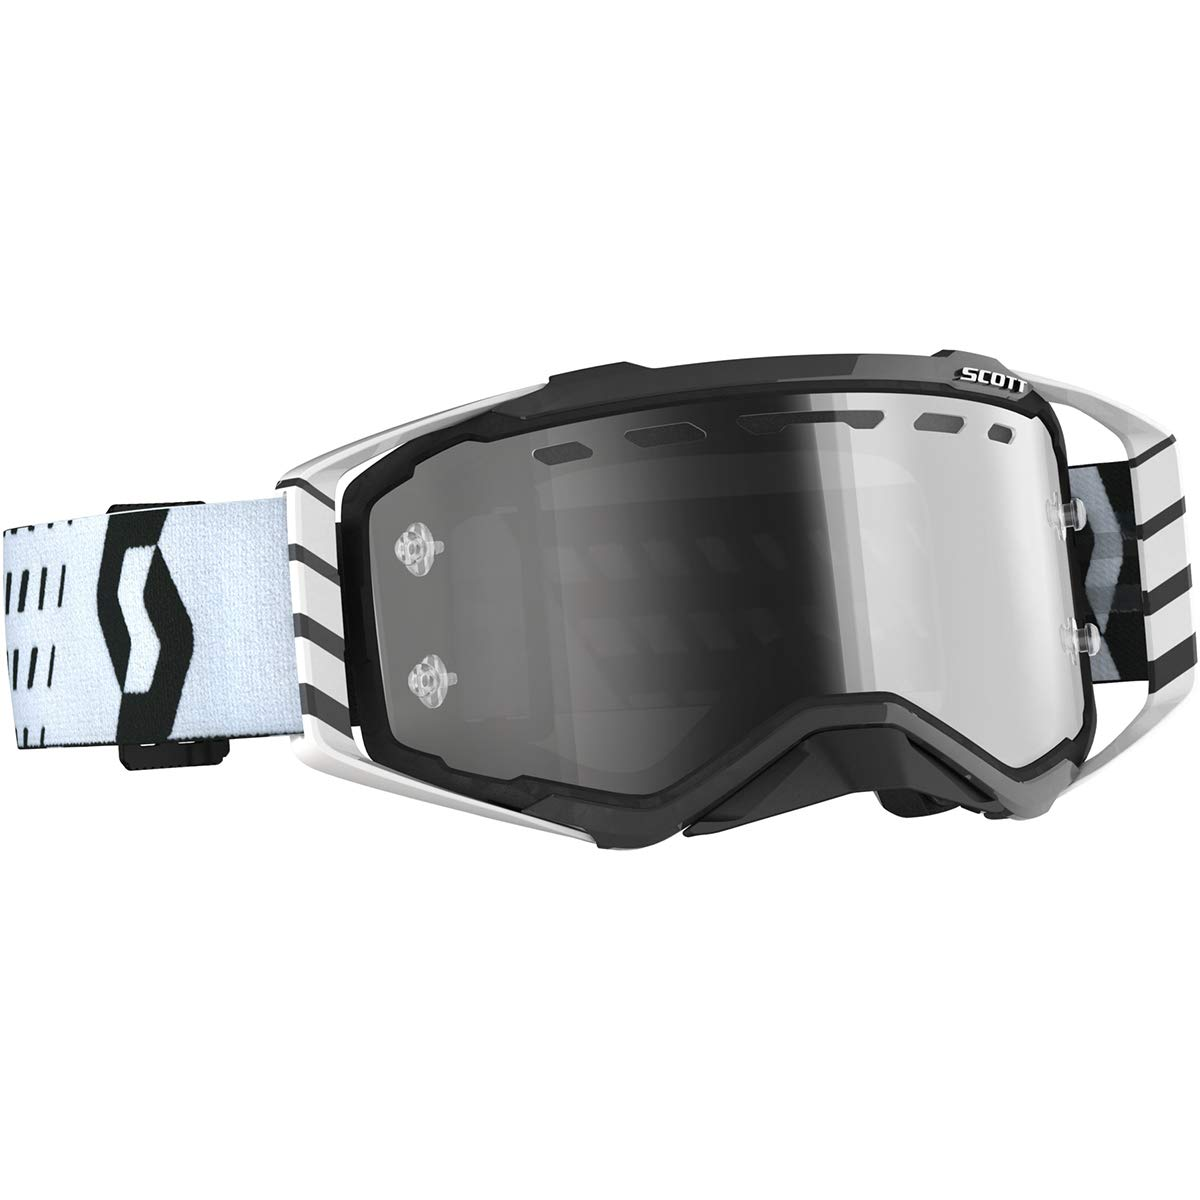 Scott Prospect Enduro LS Adult Off-Road Motorcycle Goggles - Black/White/Light Sensitive Grey/One Size by Scott